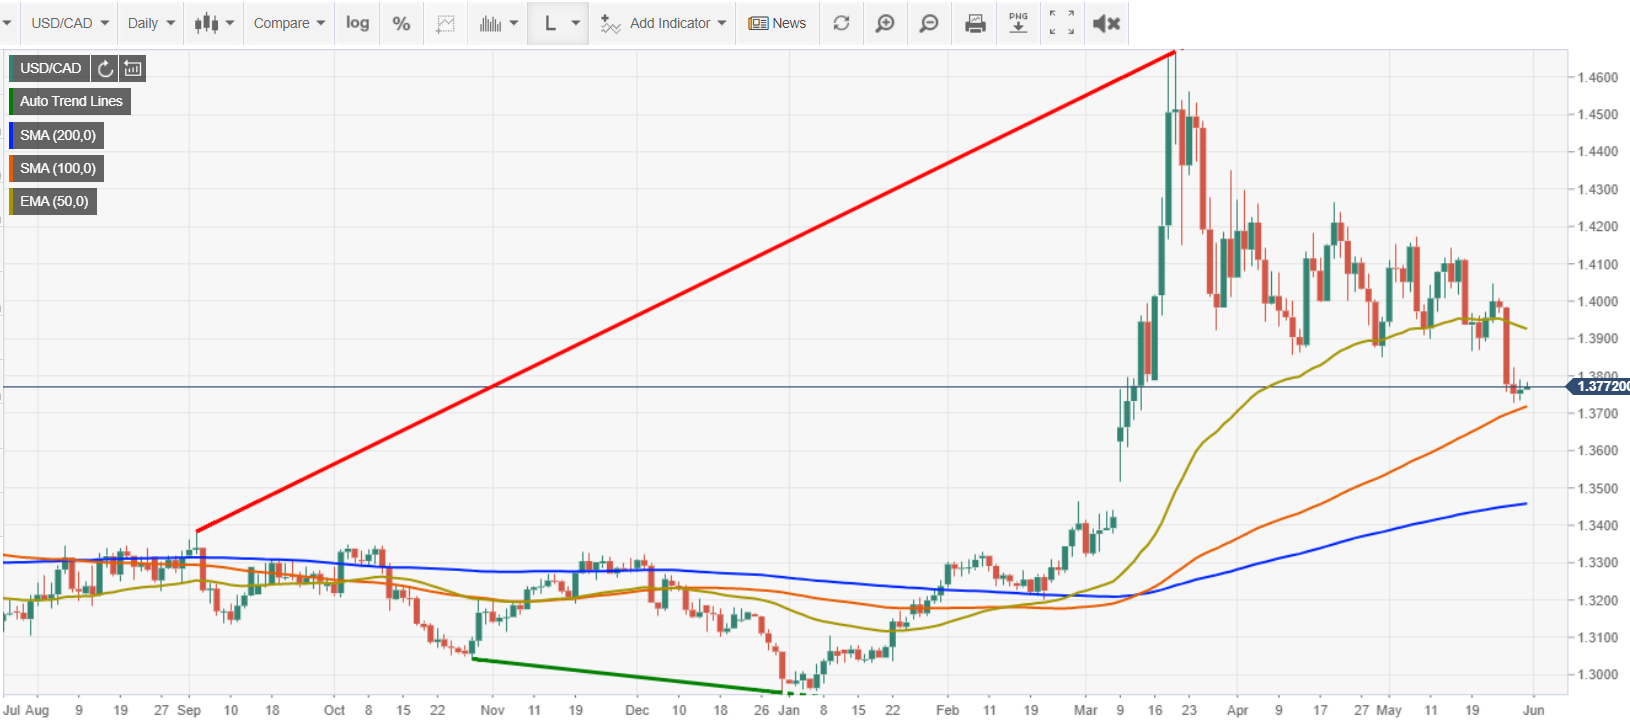 USDCAD Daily Chart - FXSTREET - 29 MAY 2020